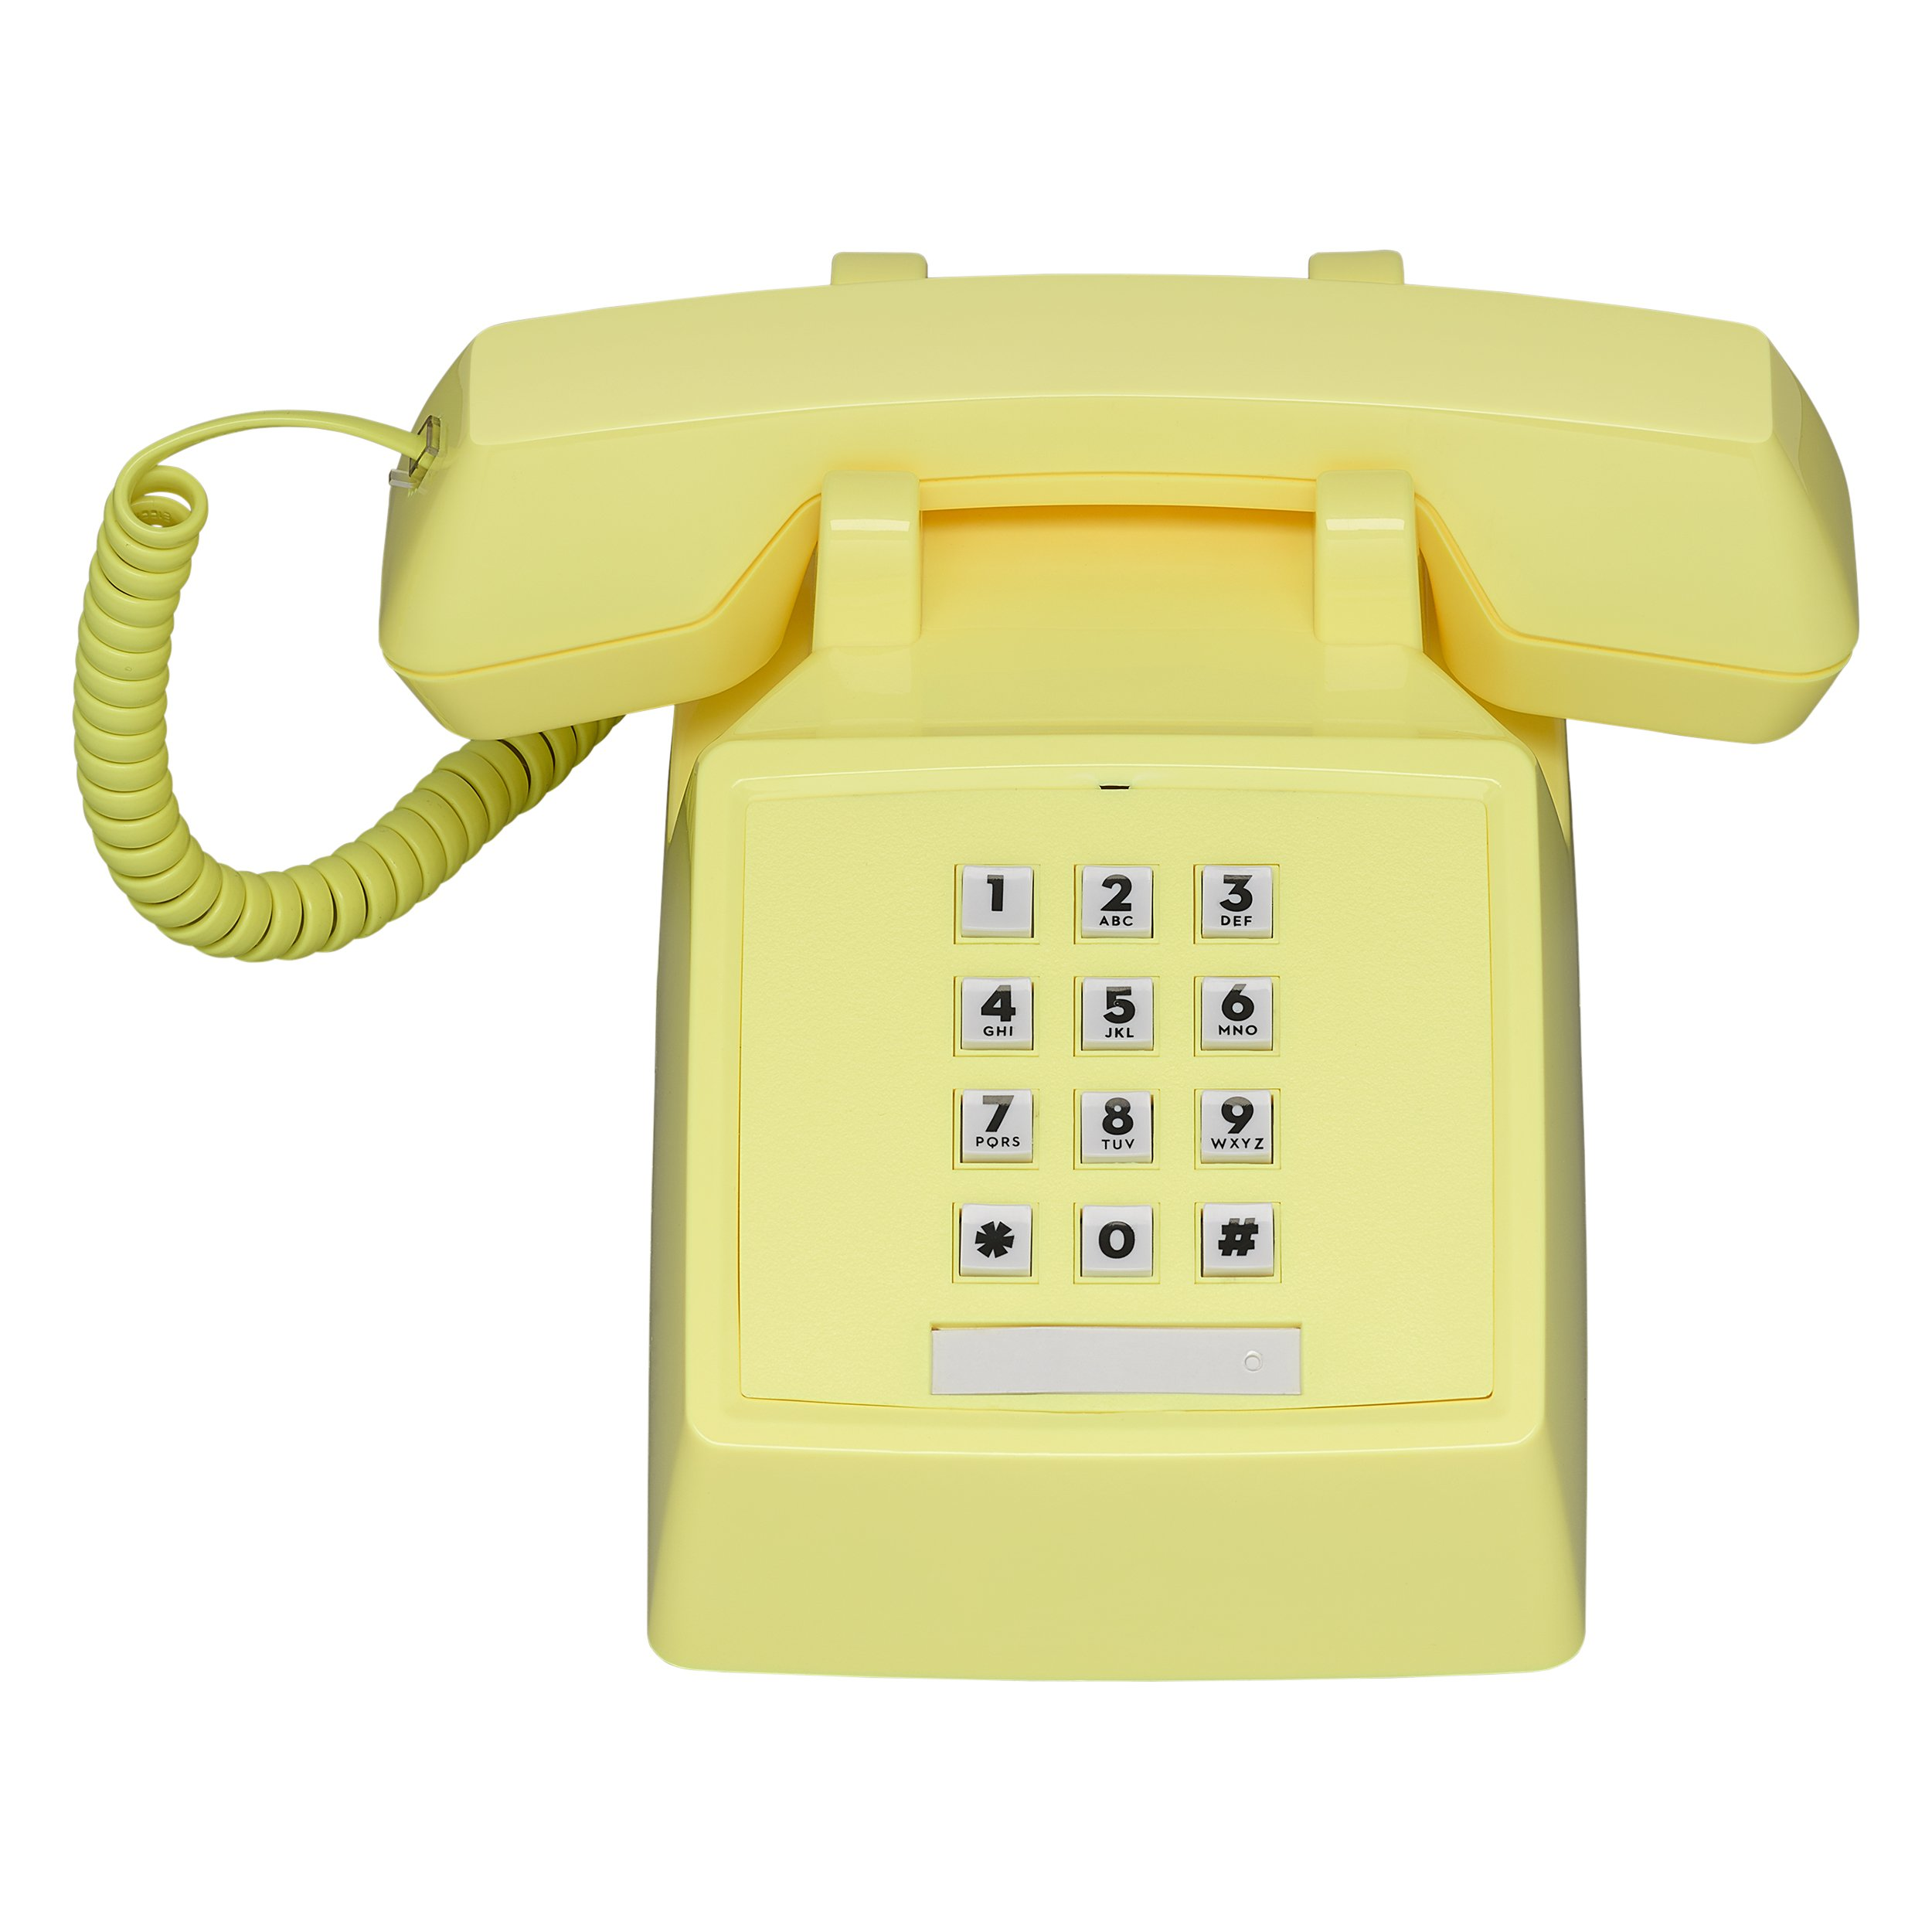 Wild Wood 2500 Classic Retro 1980s Style Corded Landline Phone with Push Buttons, Lemon Sorbet by Wildwood